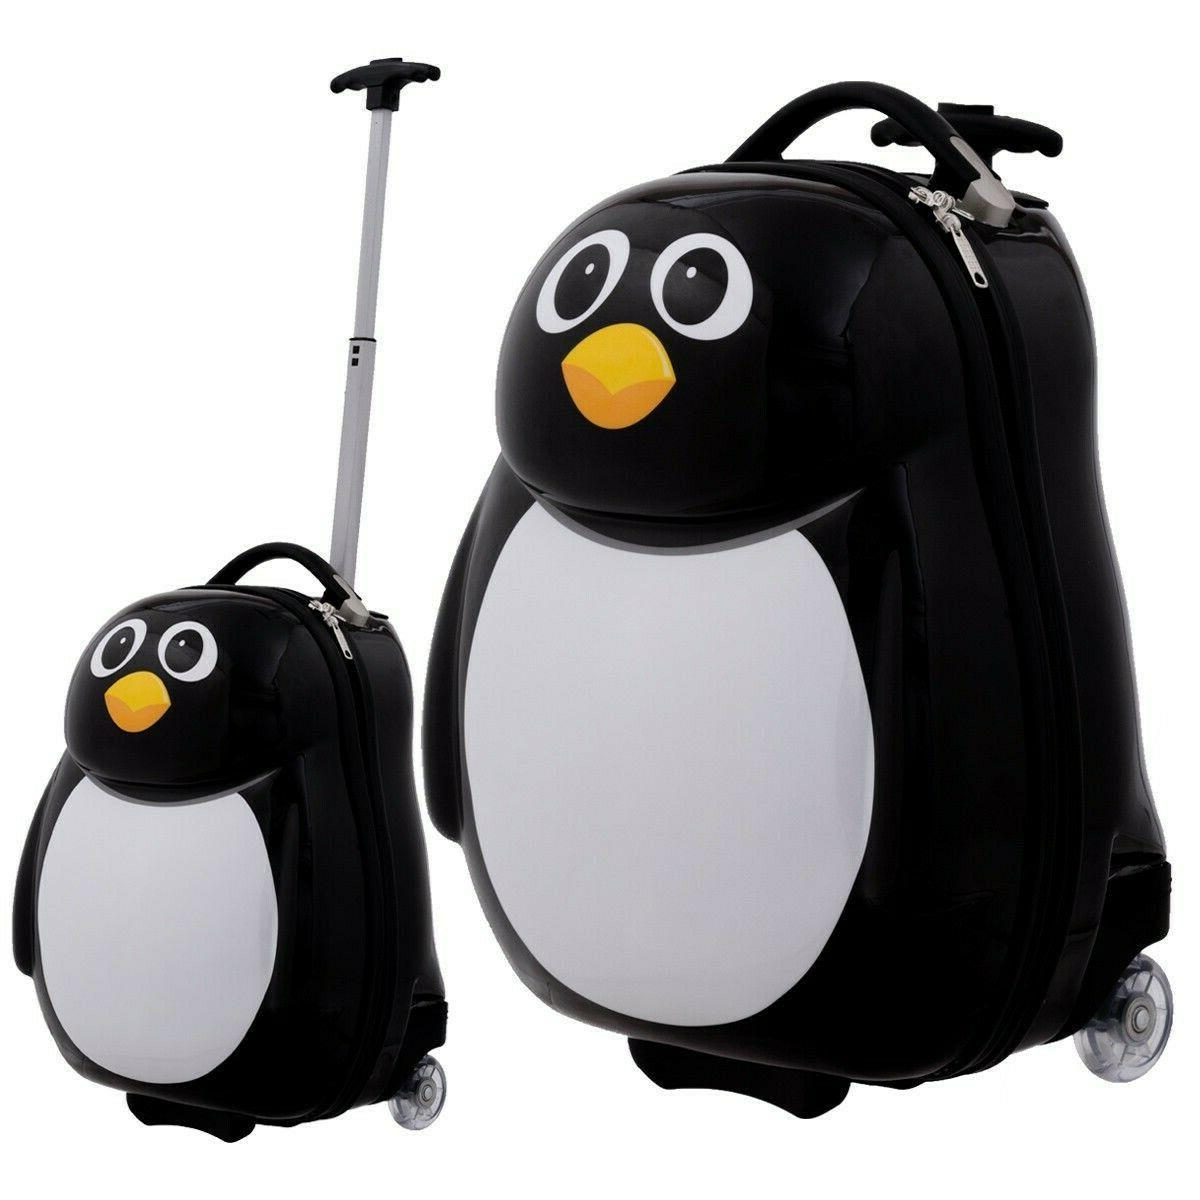 Luggage Set Suitcase School Travel New